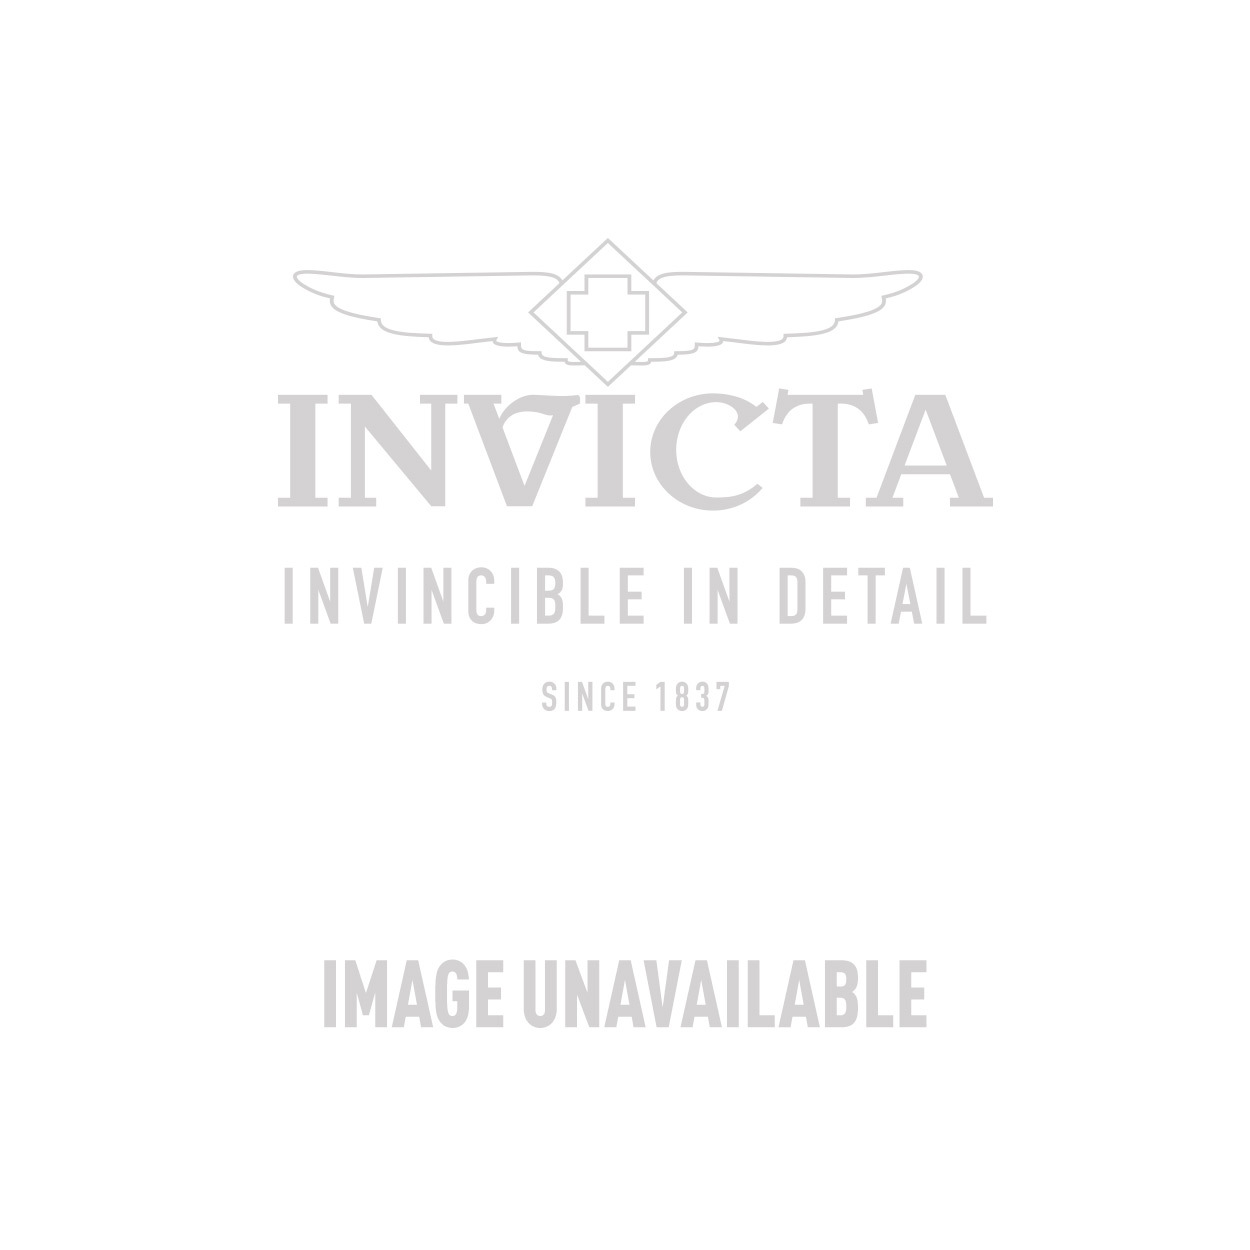 INVICTA Jewelry ELEGANCE Earrings None 9.2 Silver 925 Chocolate+Yellow Gold - Model J0137